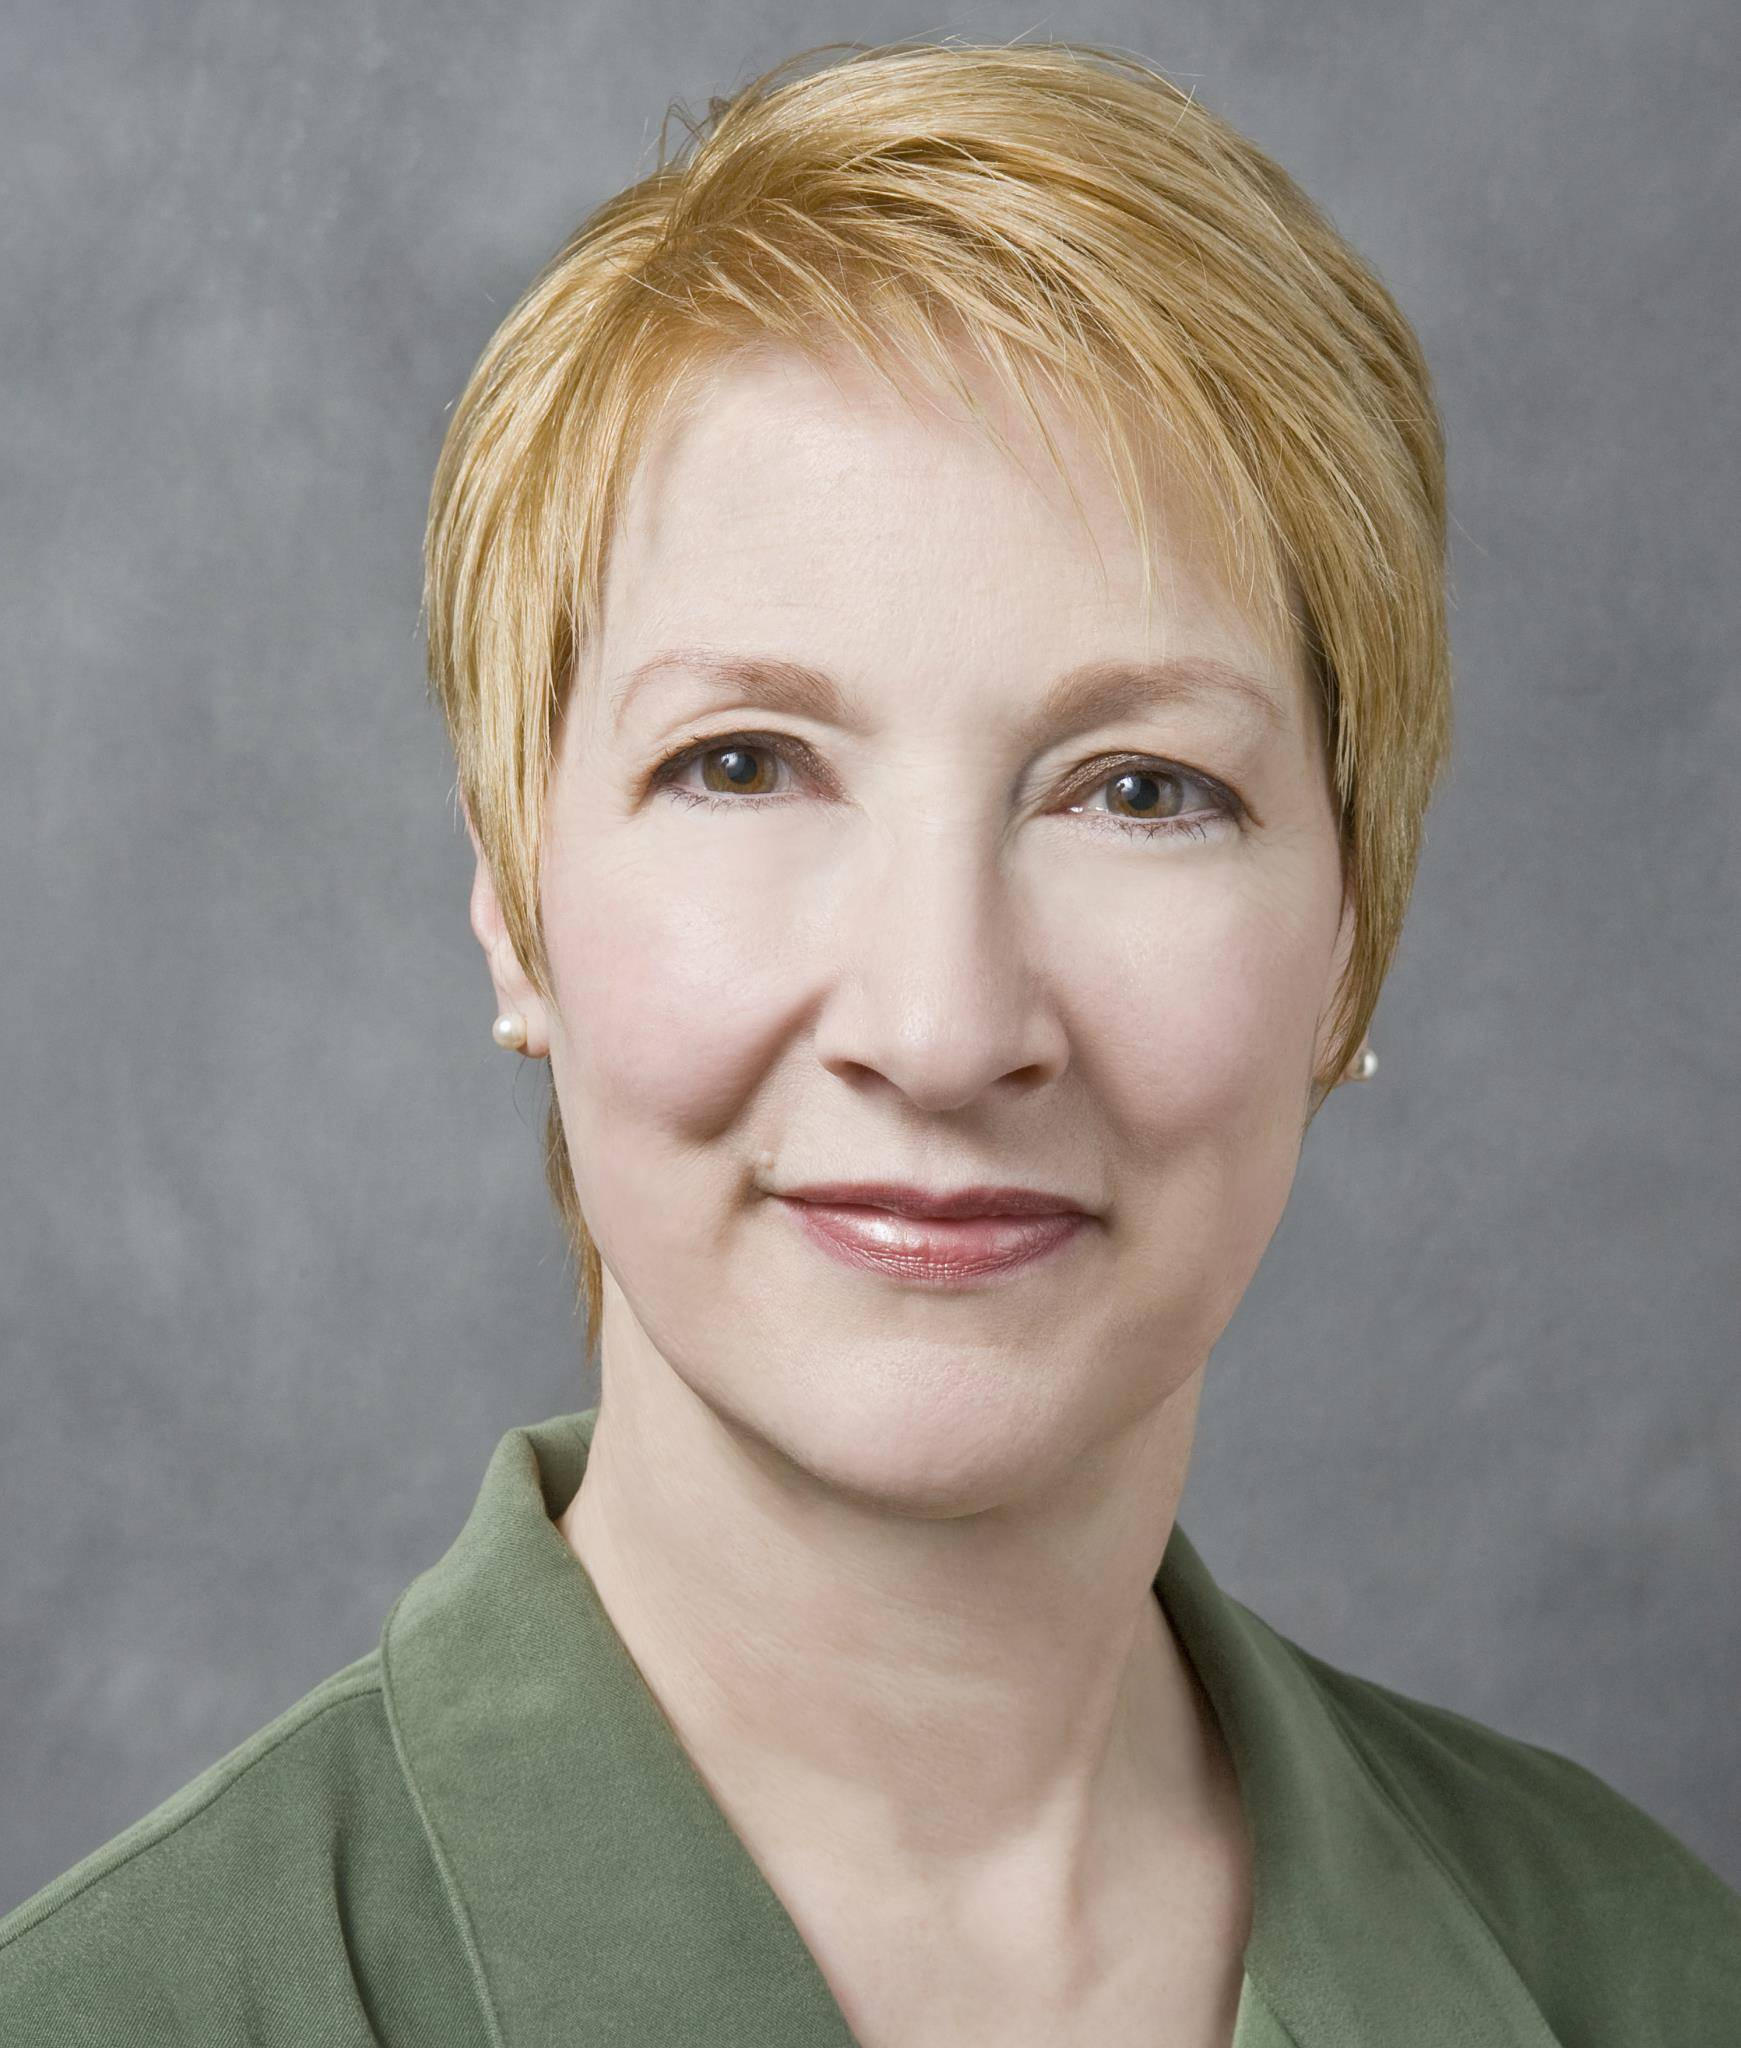 Nancy Wade, running for 5th District U.S. Representative